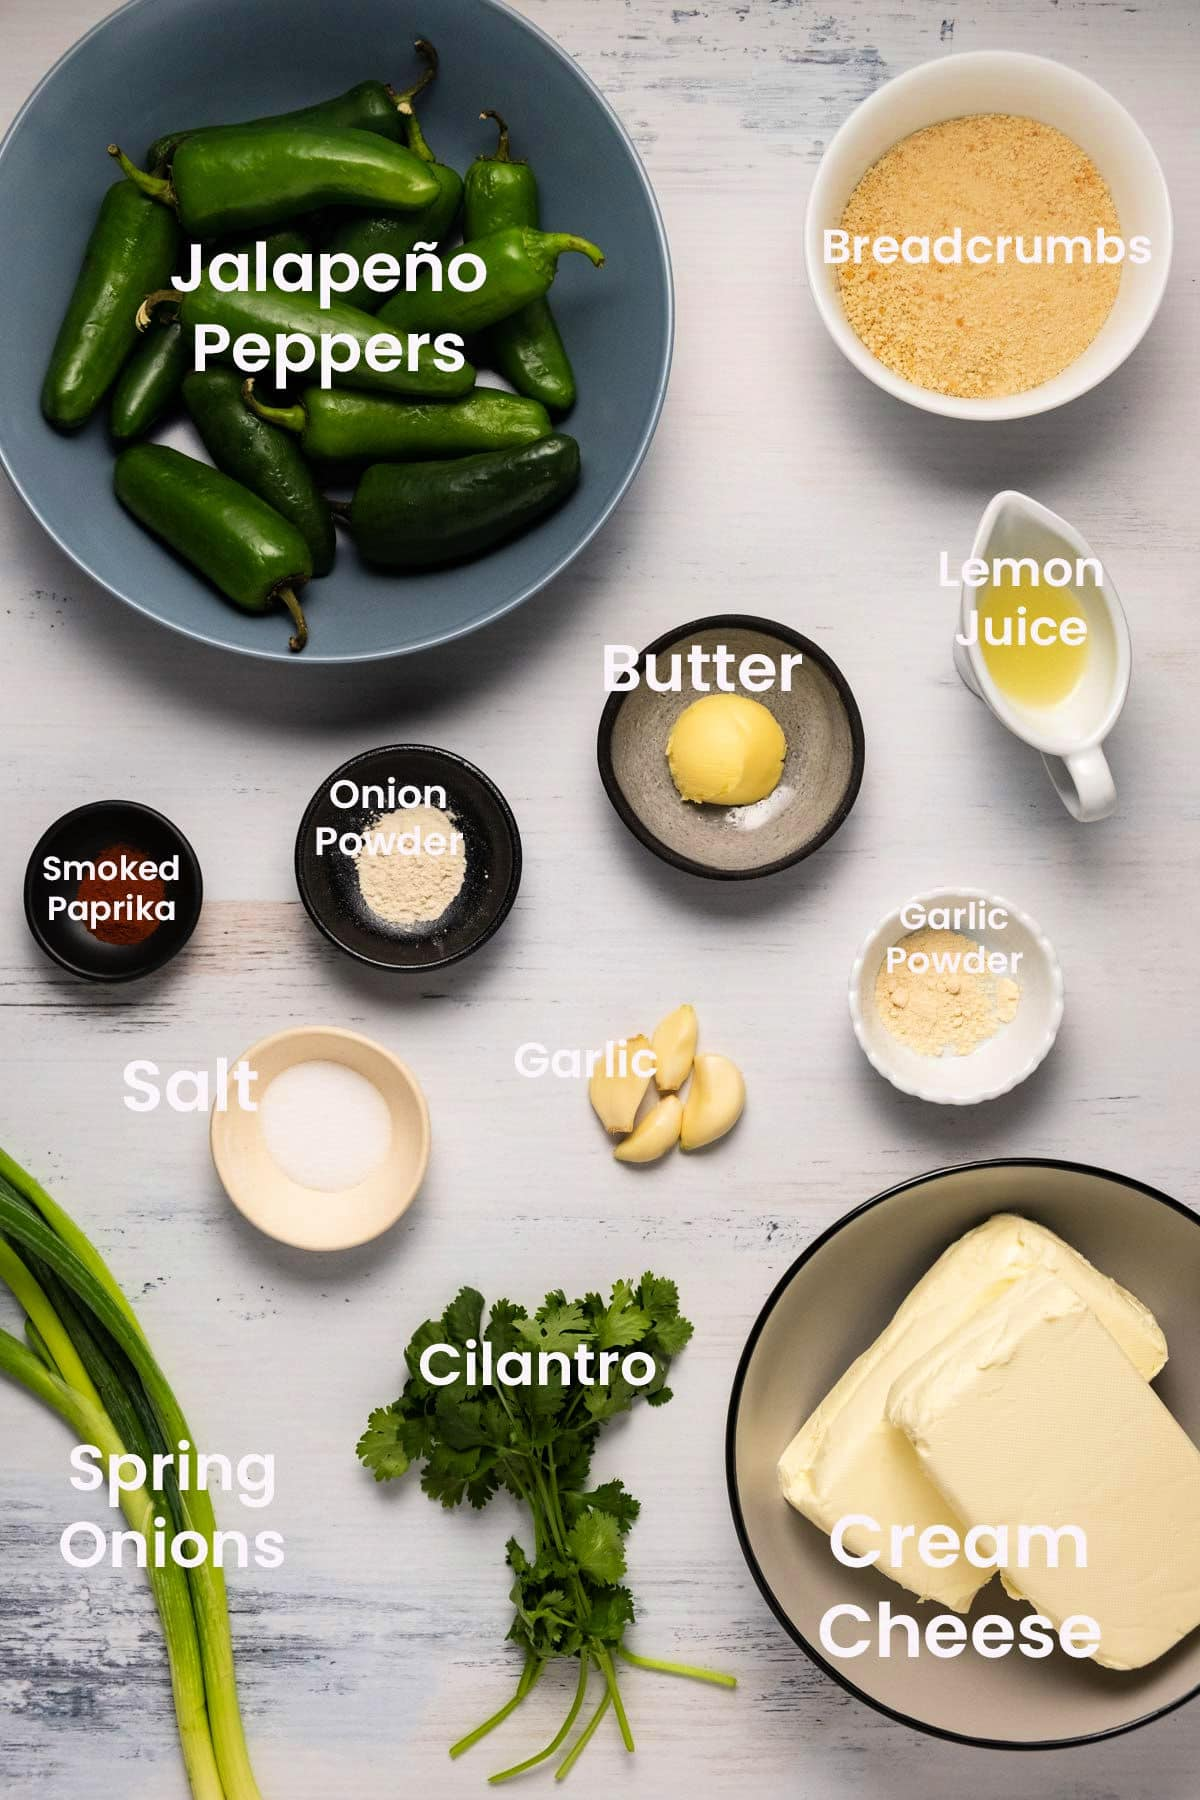 Ingredients to make baked jalapeño poppers.